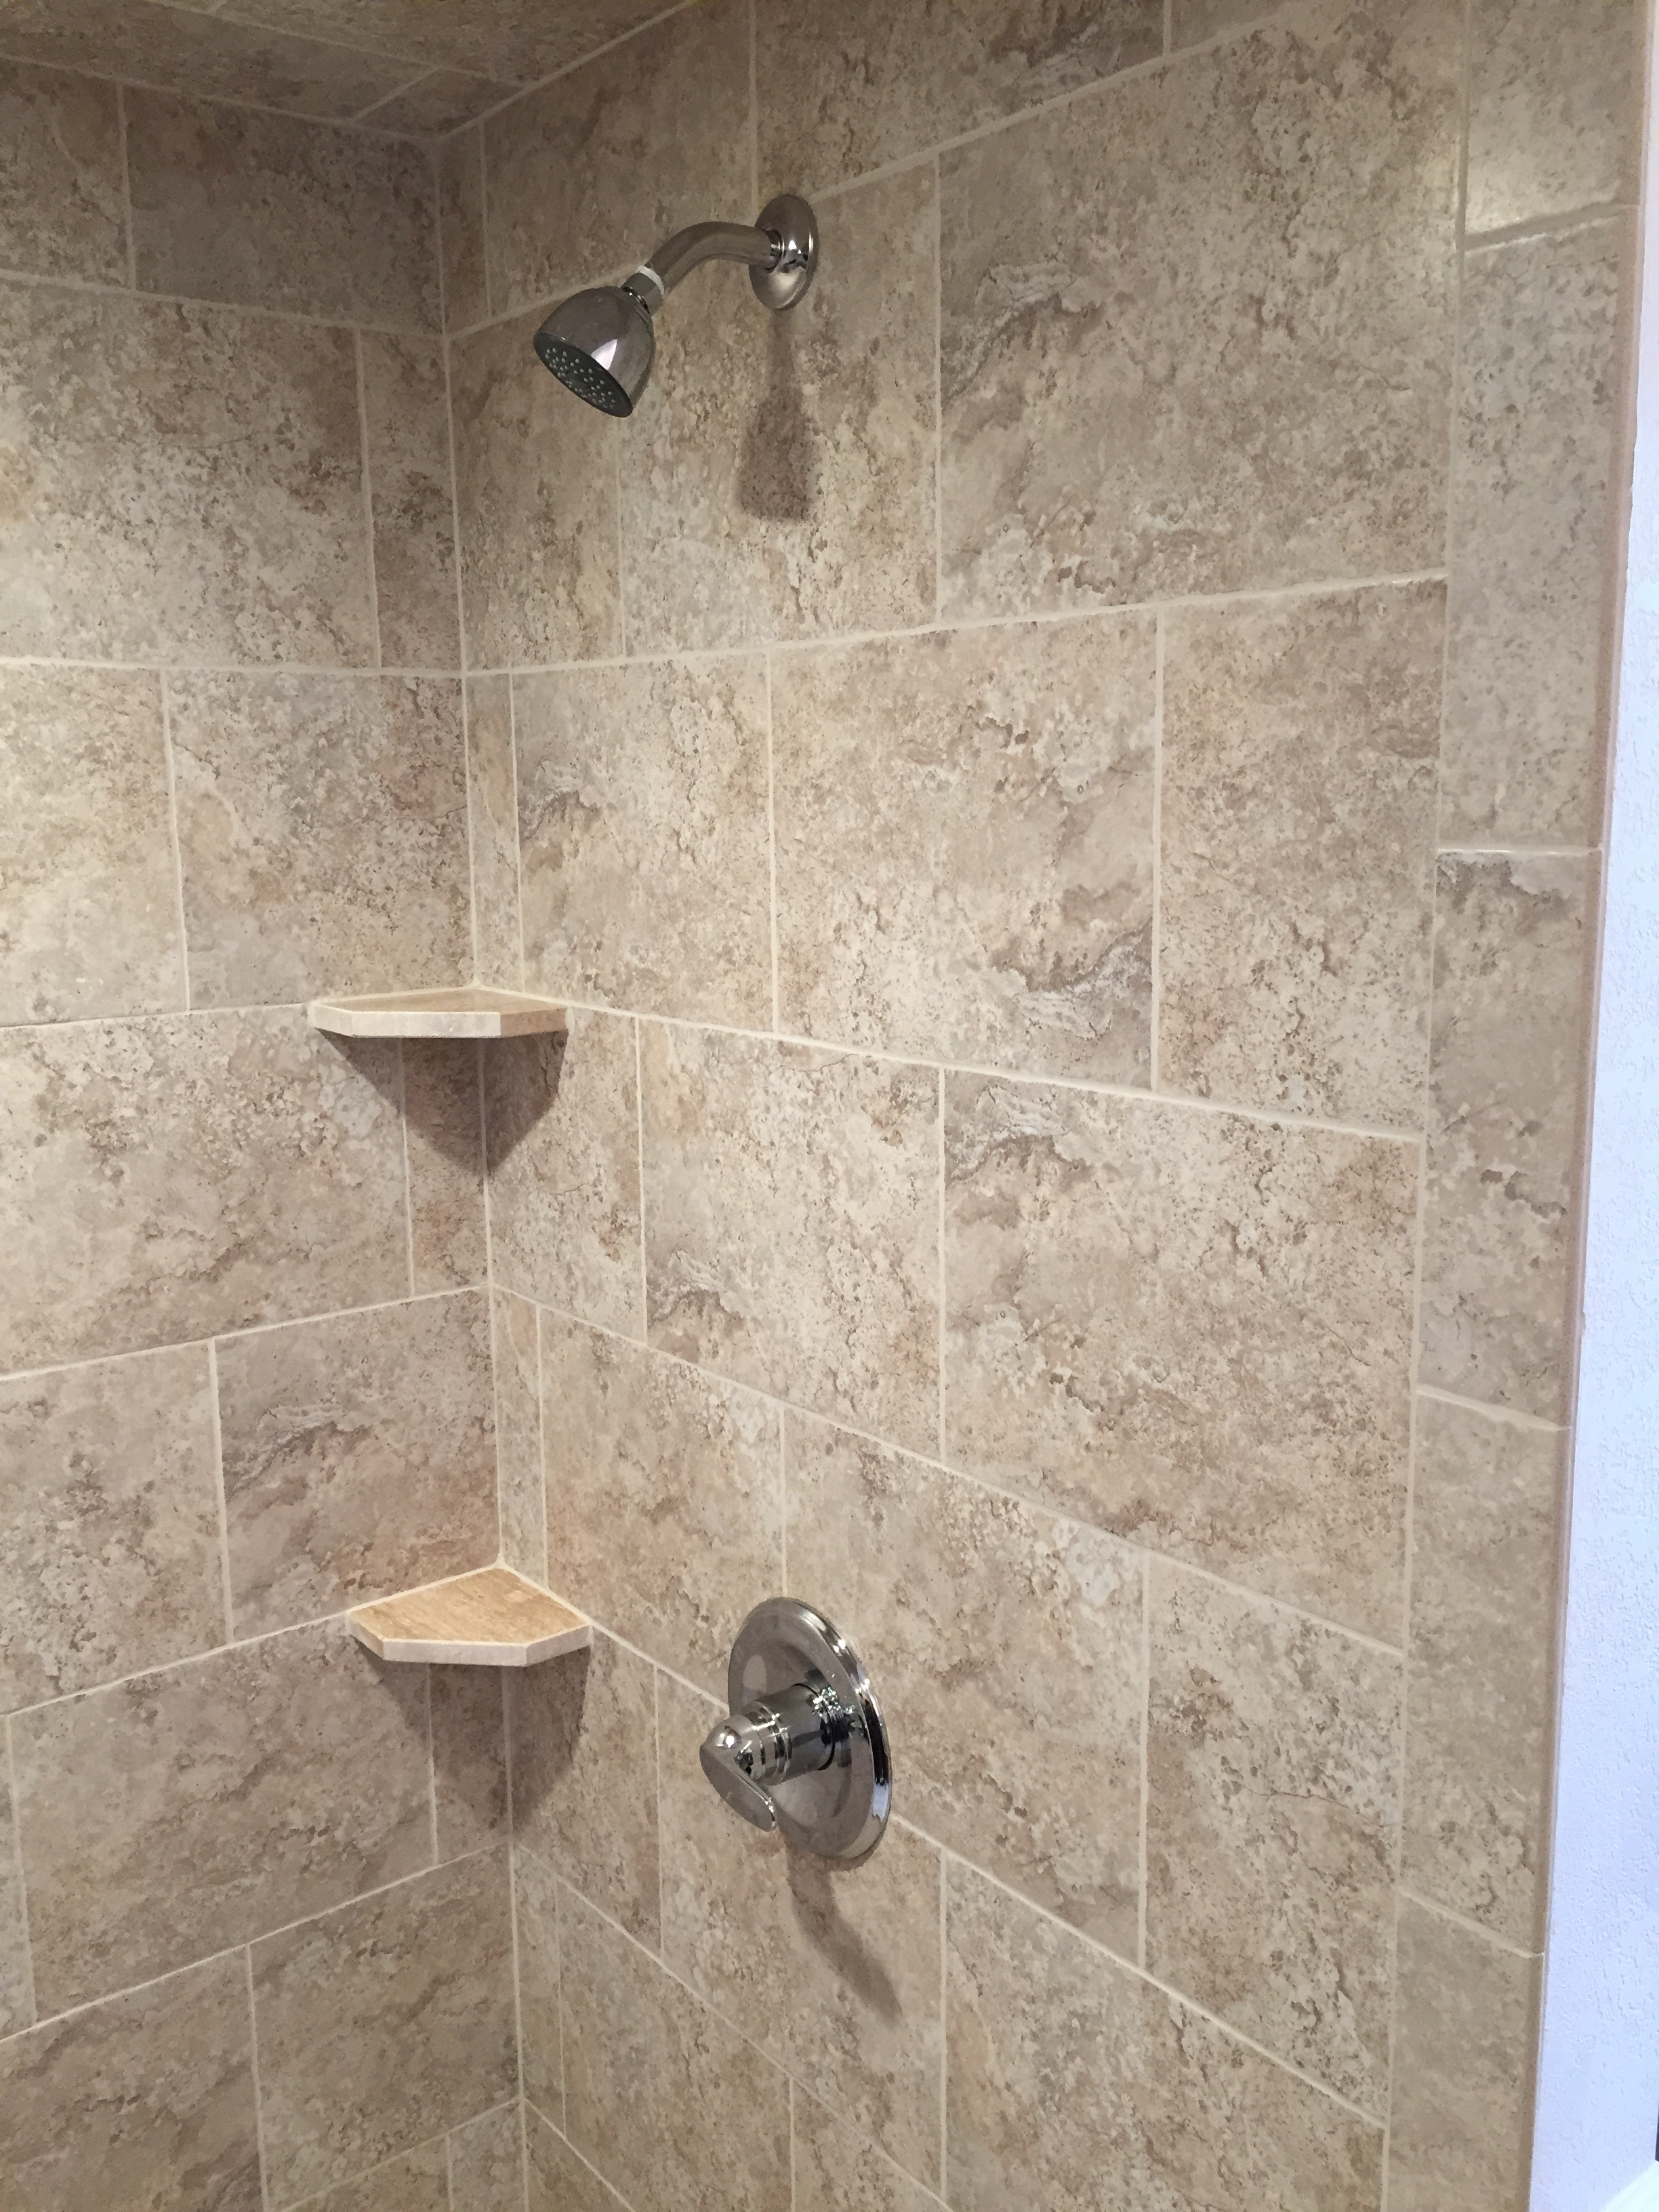 A shower remodel we did.